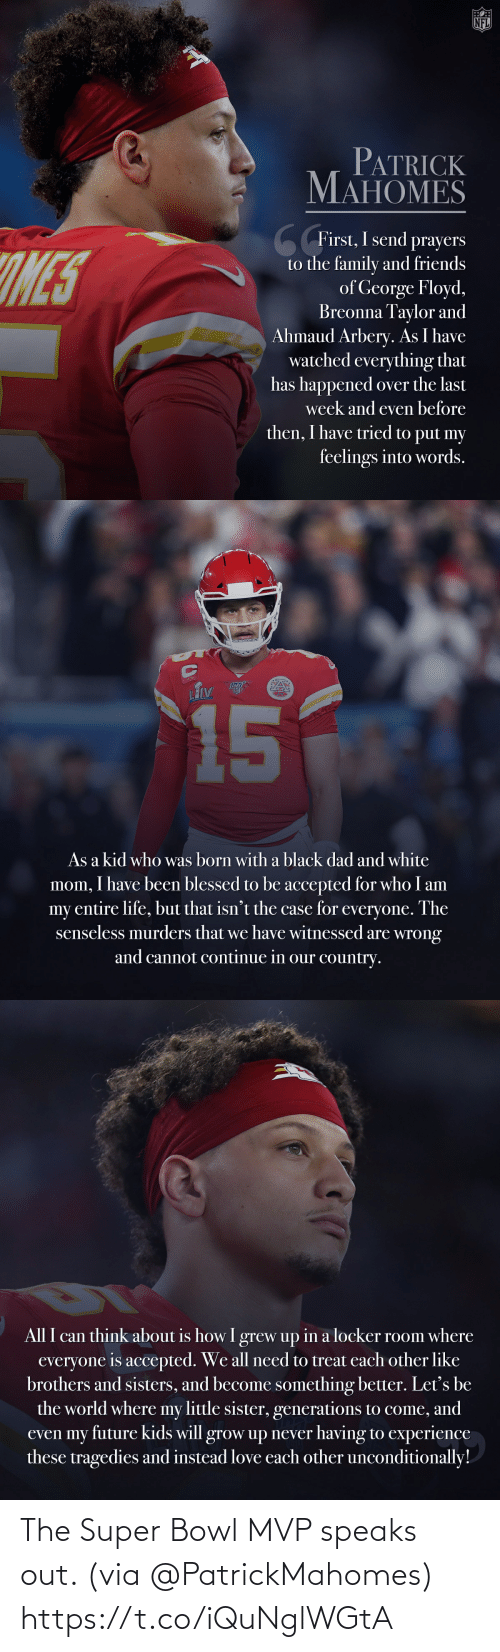 Speaks: The Super Bowl MVP speaks out. (via @PatrickMahomes) https://t.co/iQuNglWGtA